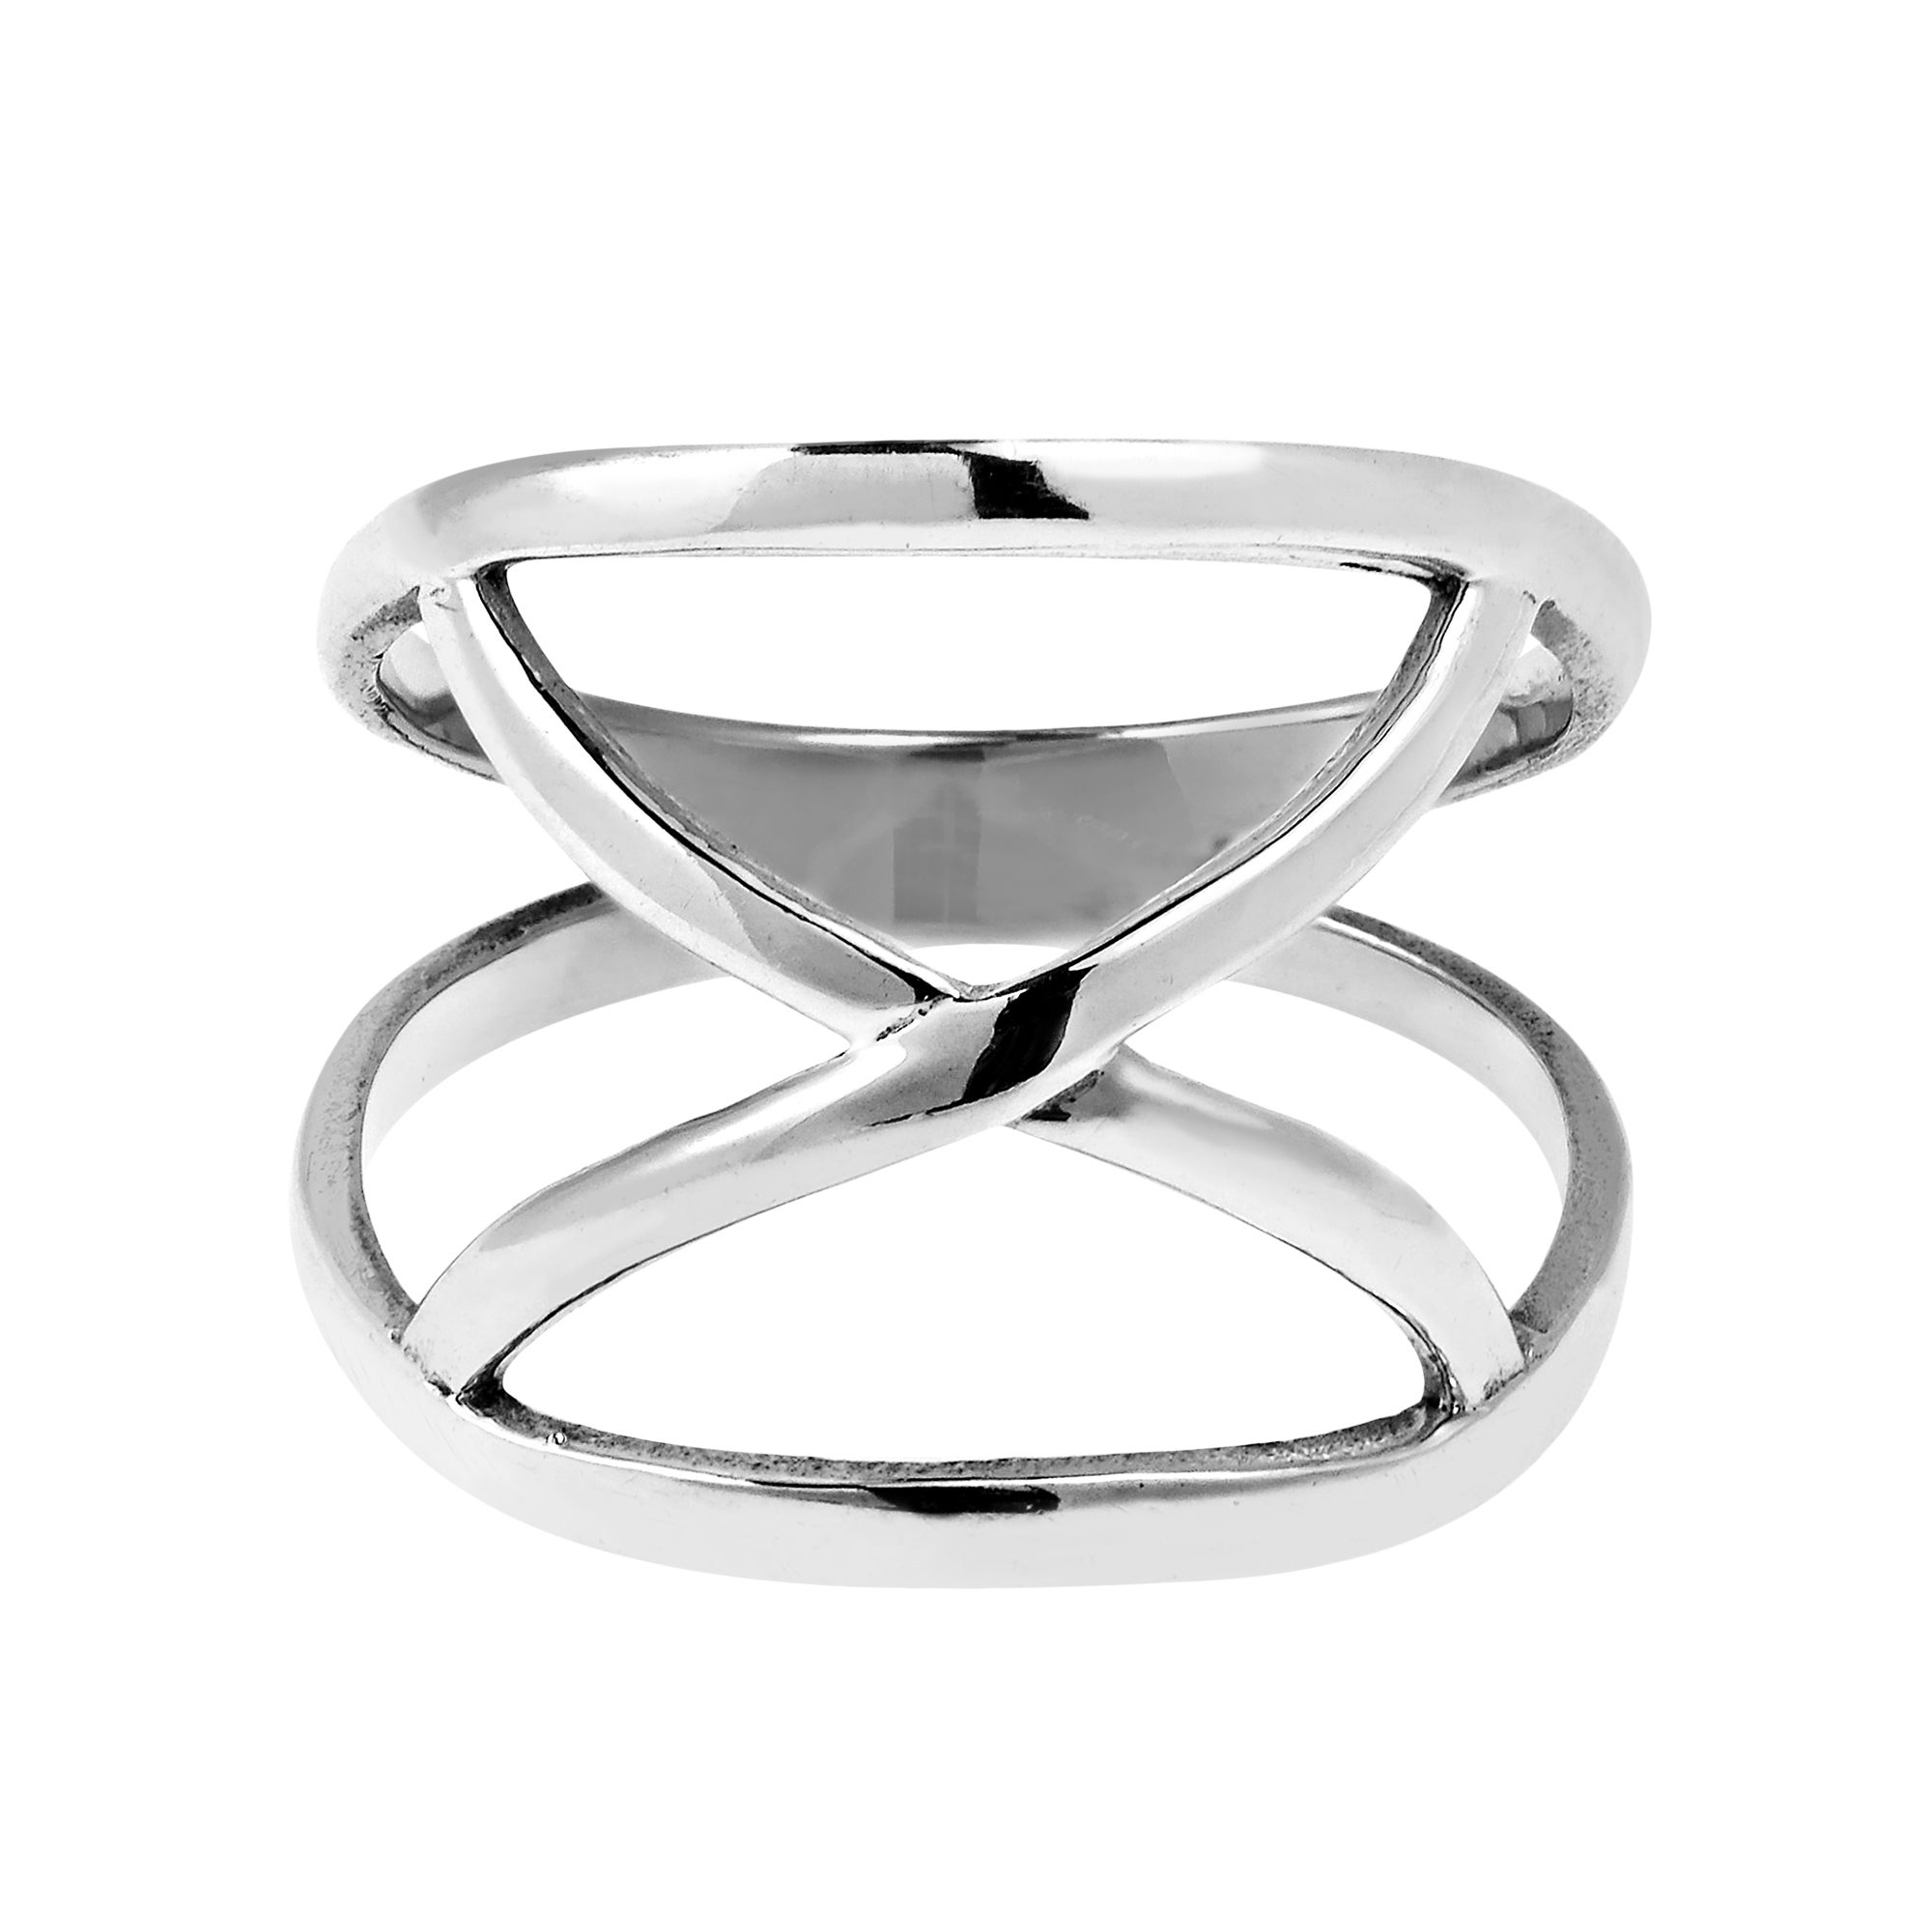 infinite over thailand sterling band jewelry shipping open loop handmade ring watches orbit free overstock product orders on modern x silver rings